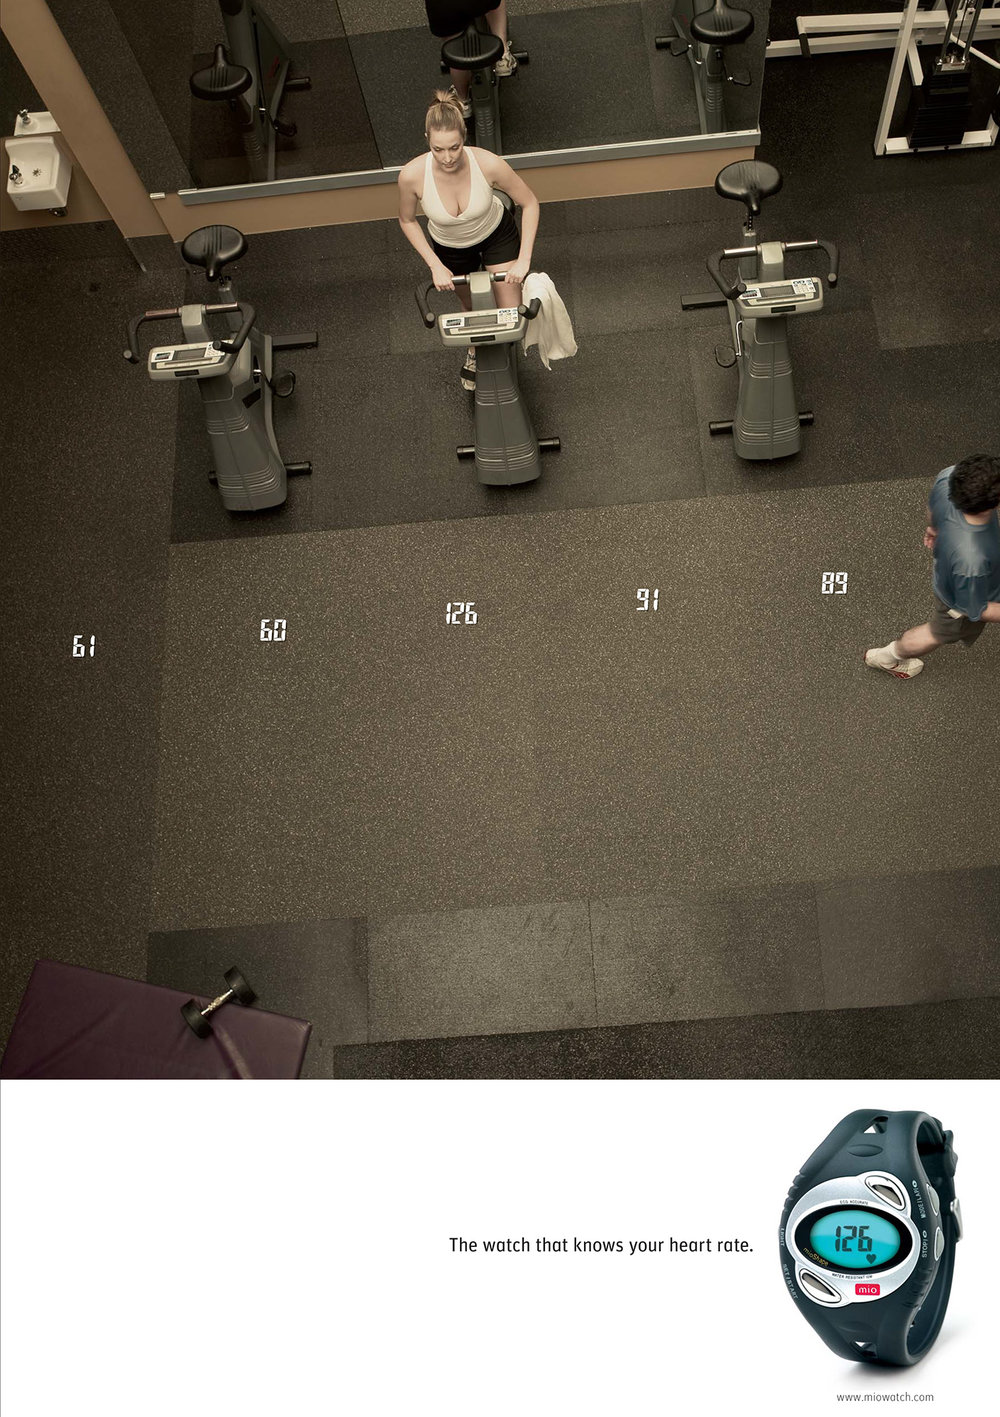 Mio_Posters_Gym.jpg